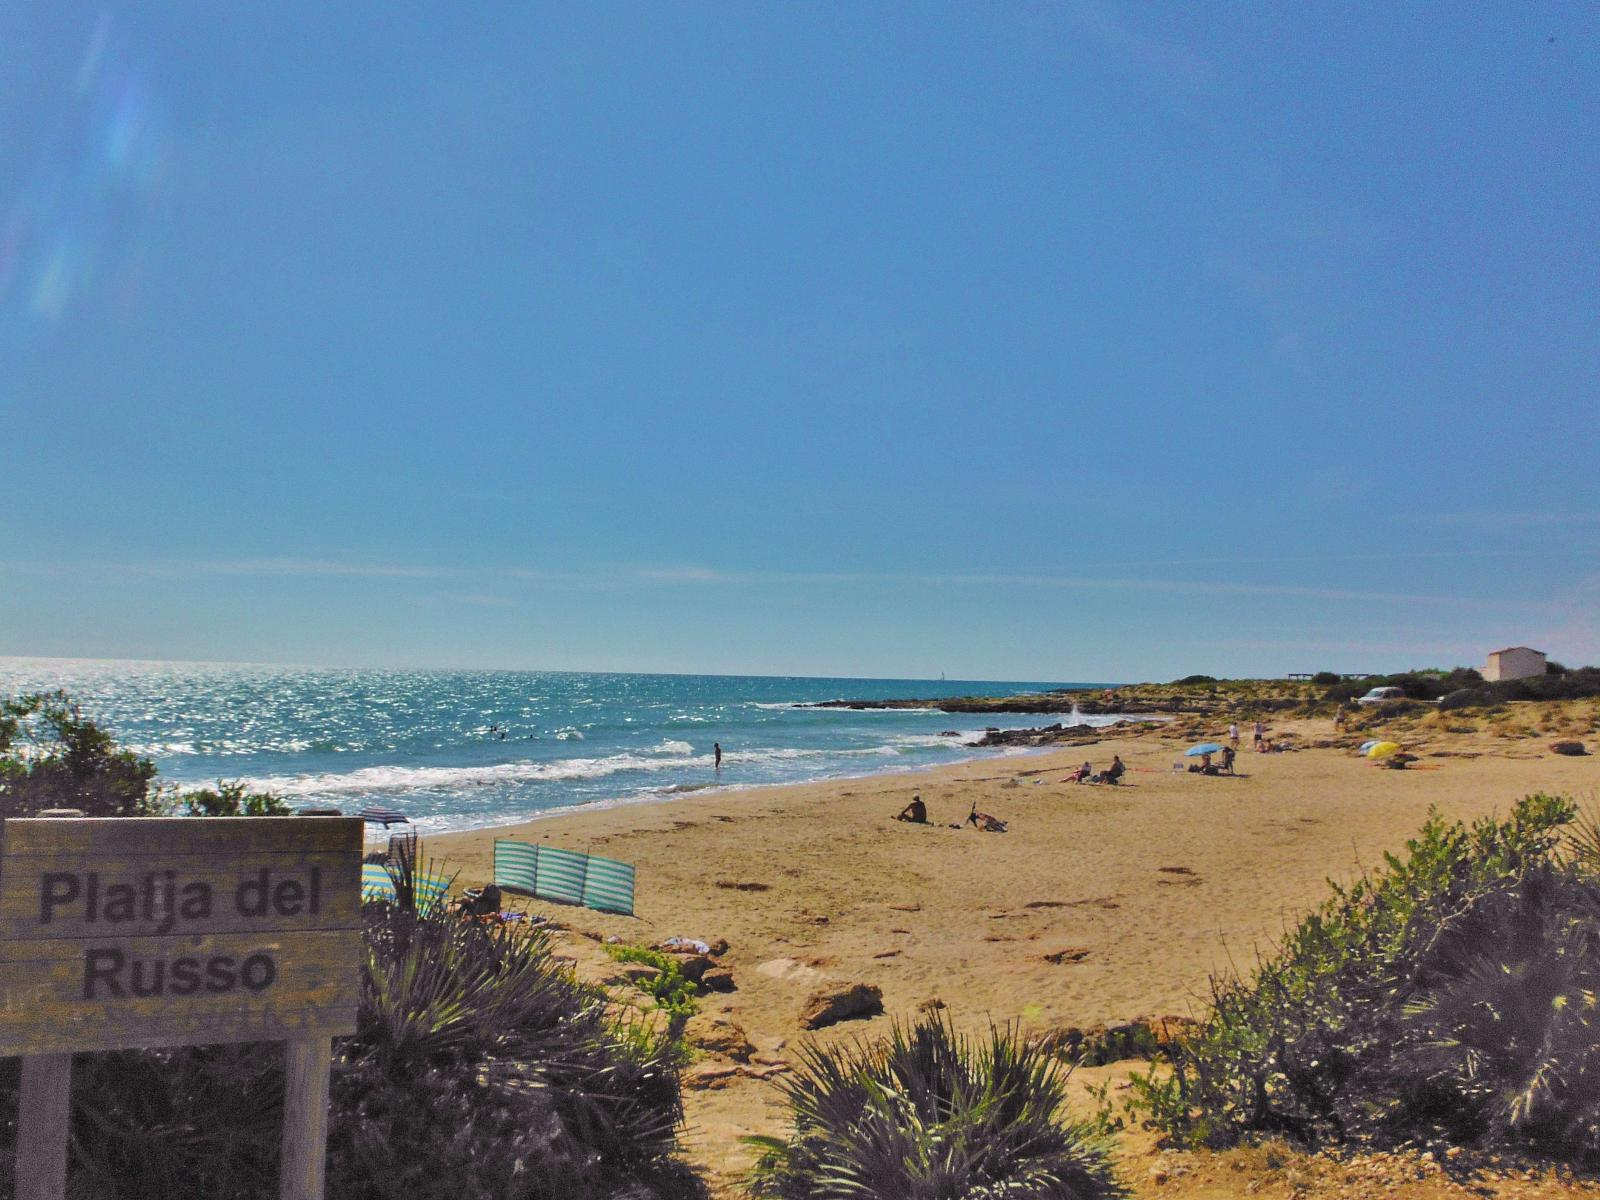 Photo of Playa del Russo